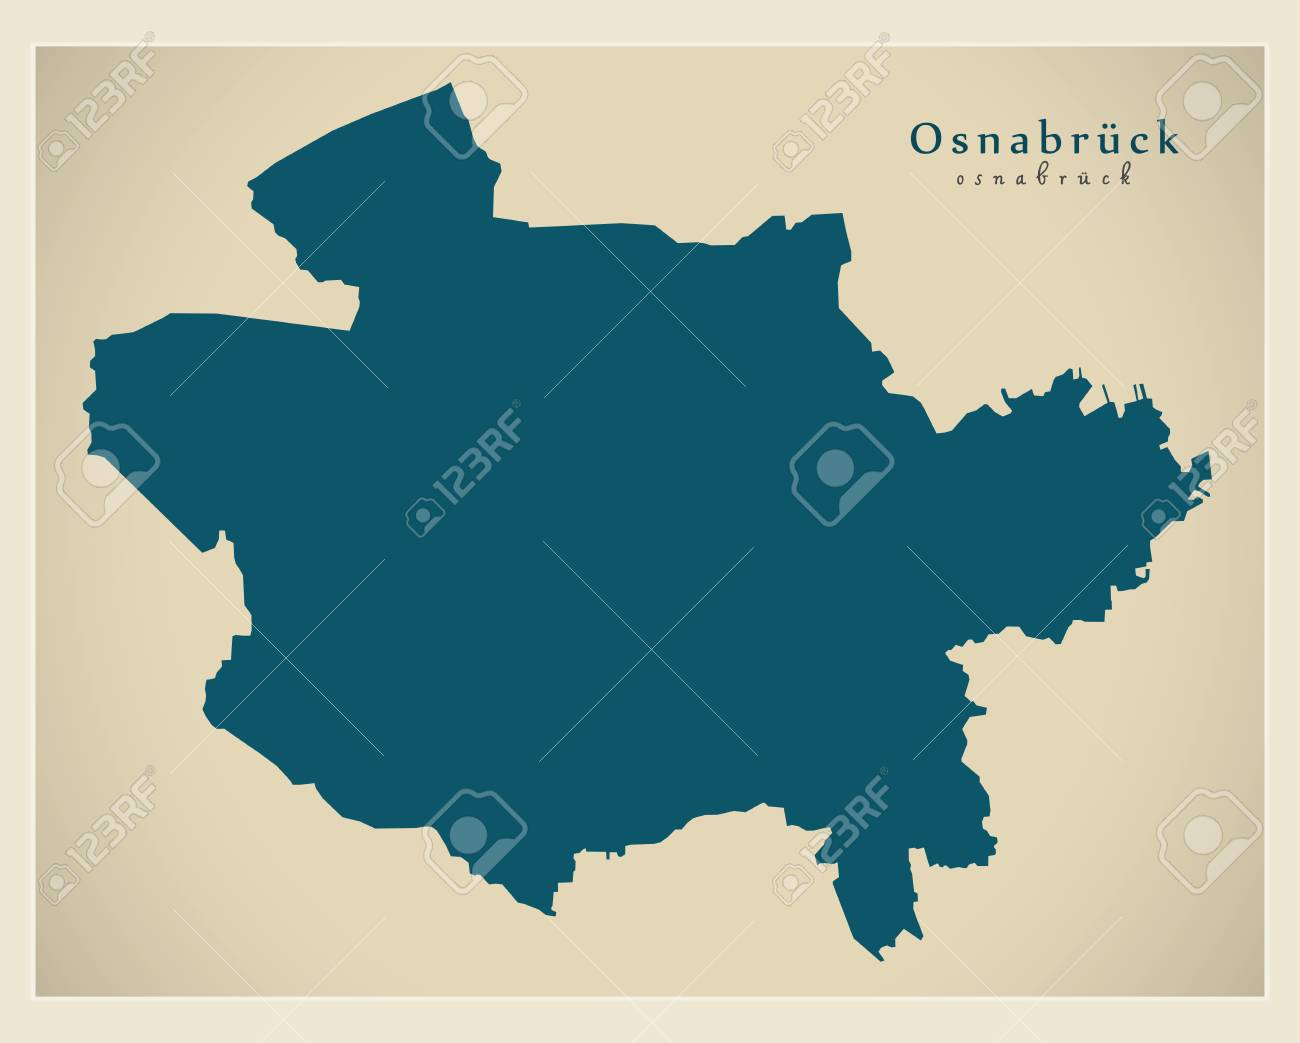 Modern City Map Osnabruck City Of Germany DE Royalty Free Cliparts